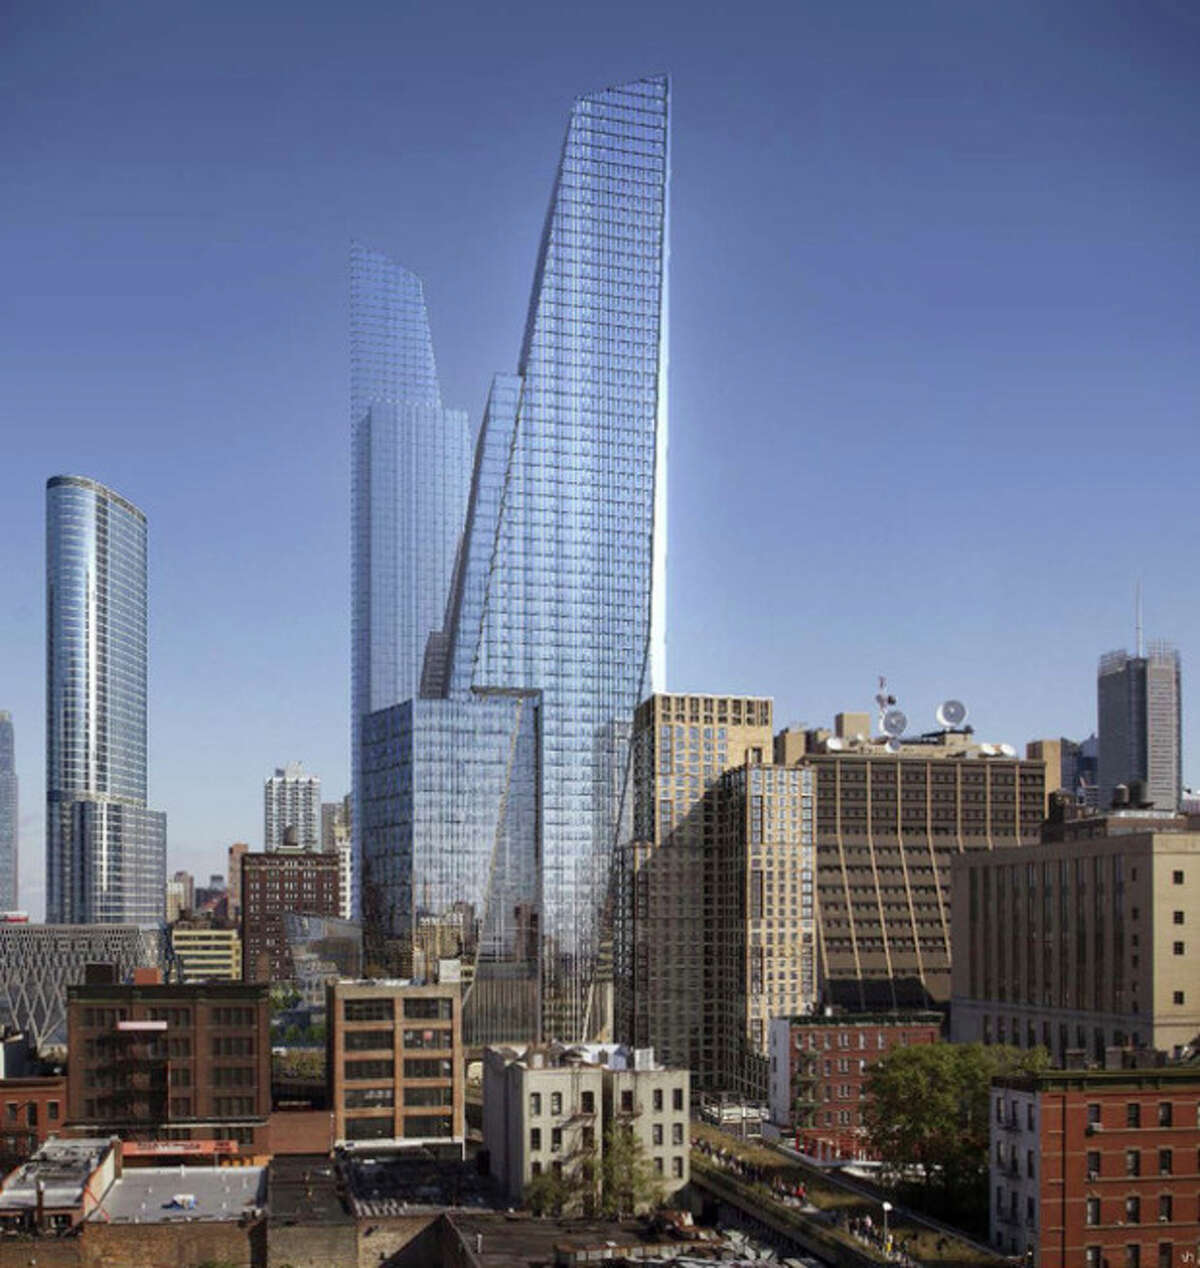 AP Photo/Visualhouse via Related Companies This artist's rendering provided by Visualhouse, via Related Companies, shows the planned Hudson Yards urban village, center, that will start rising soon on the acres of land overlooking the Hudson River.